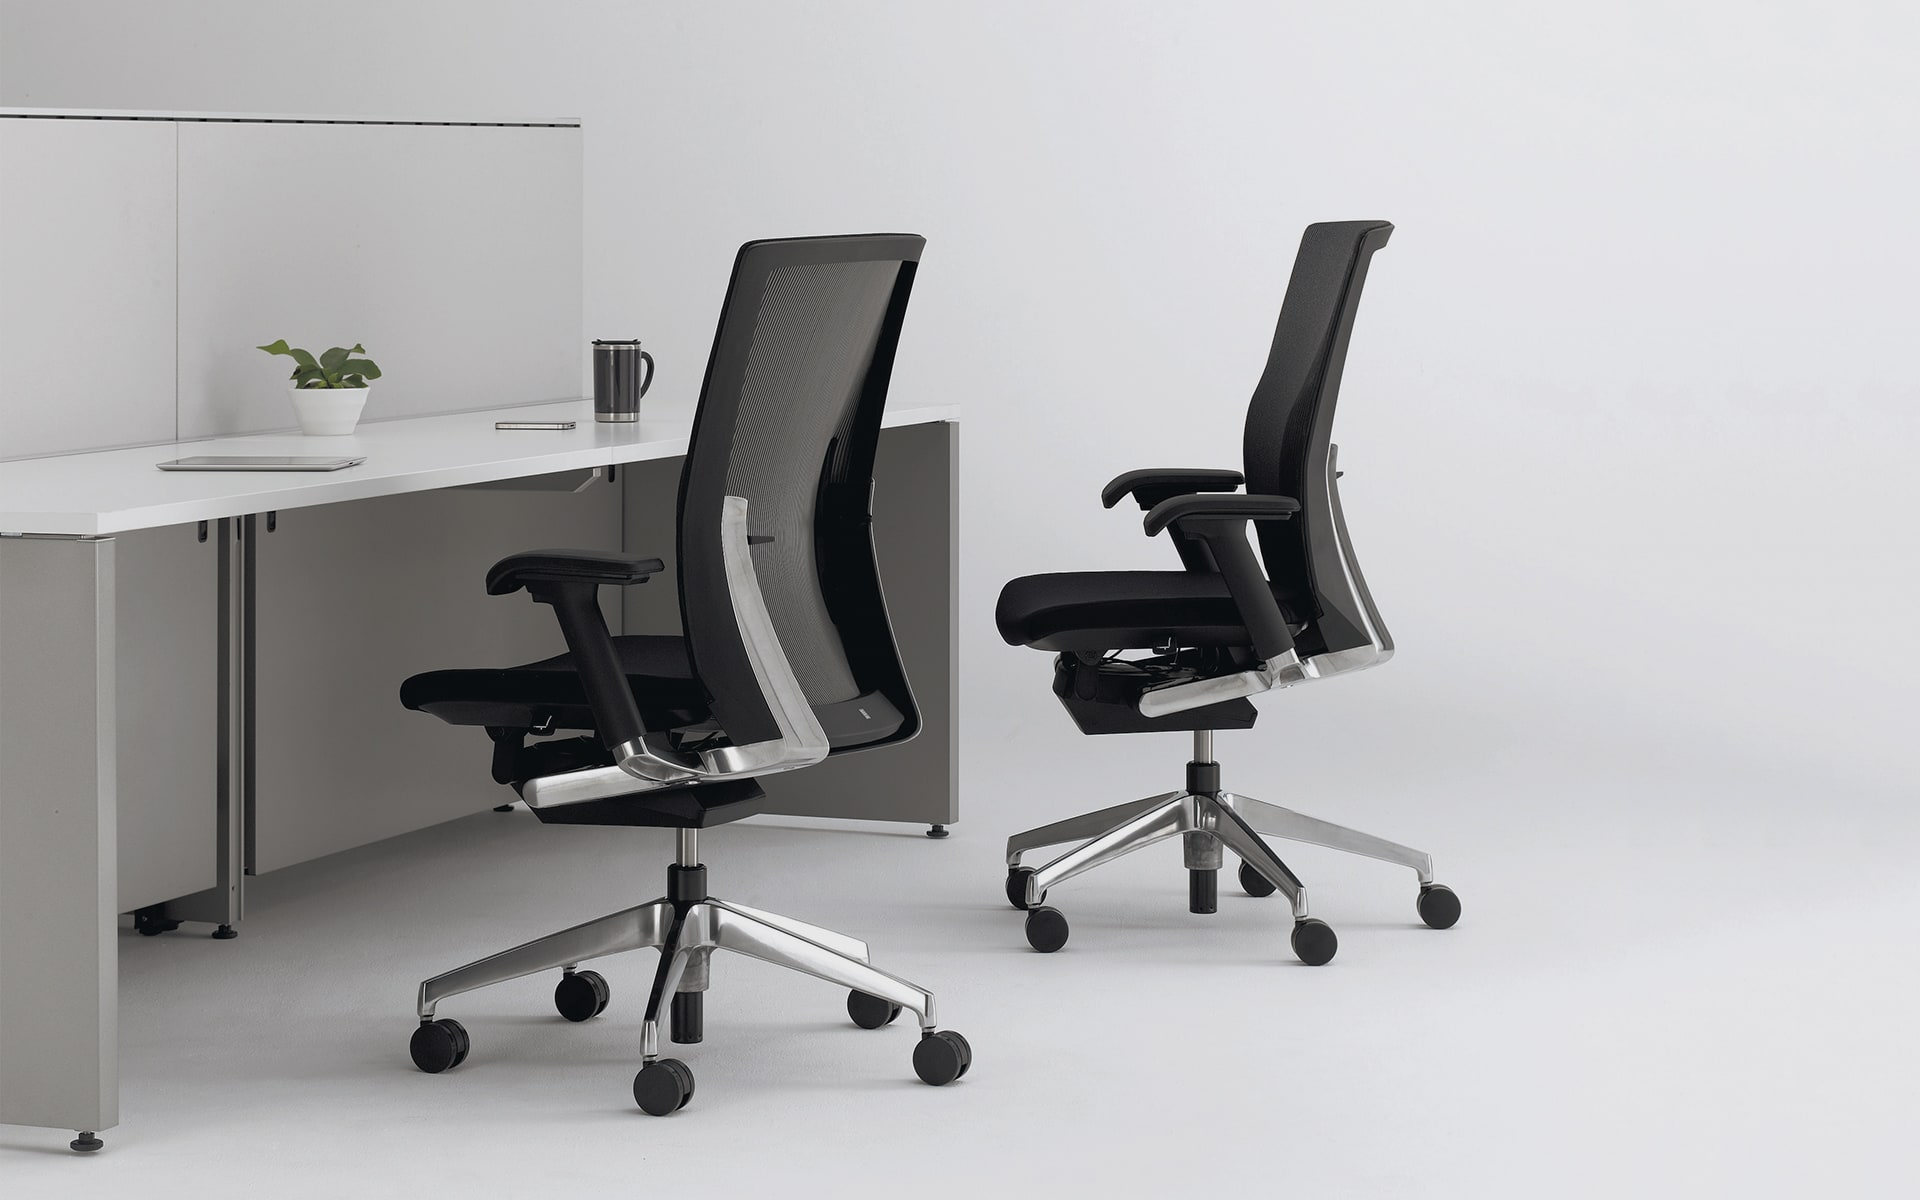 Two ITOKI Vento office chairs by ITO Design in black in puristic workspace